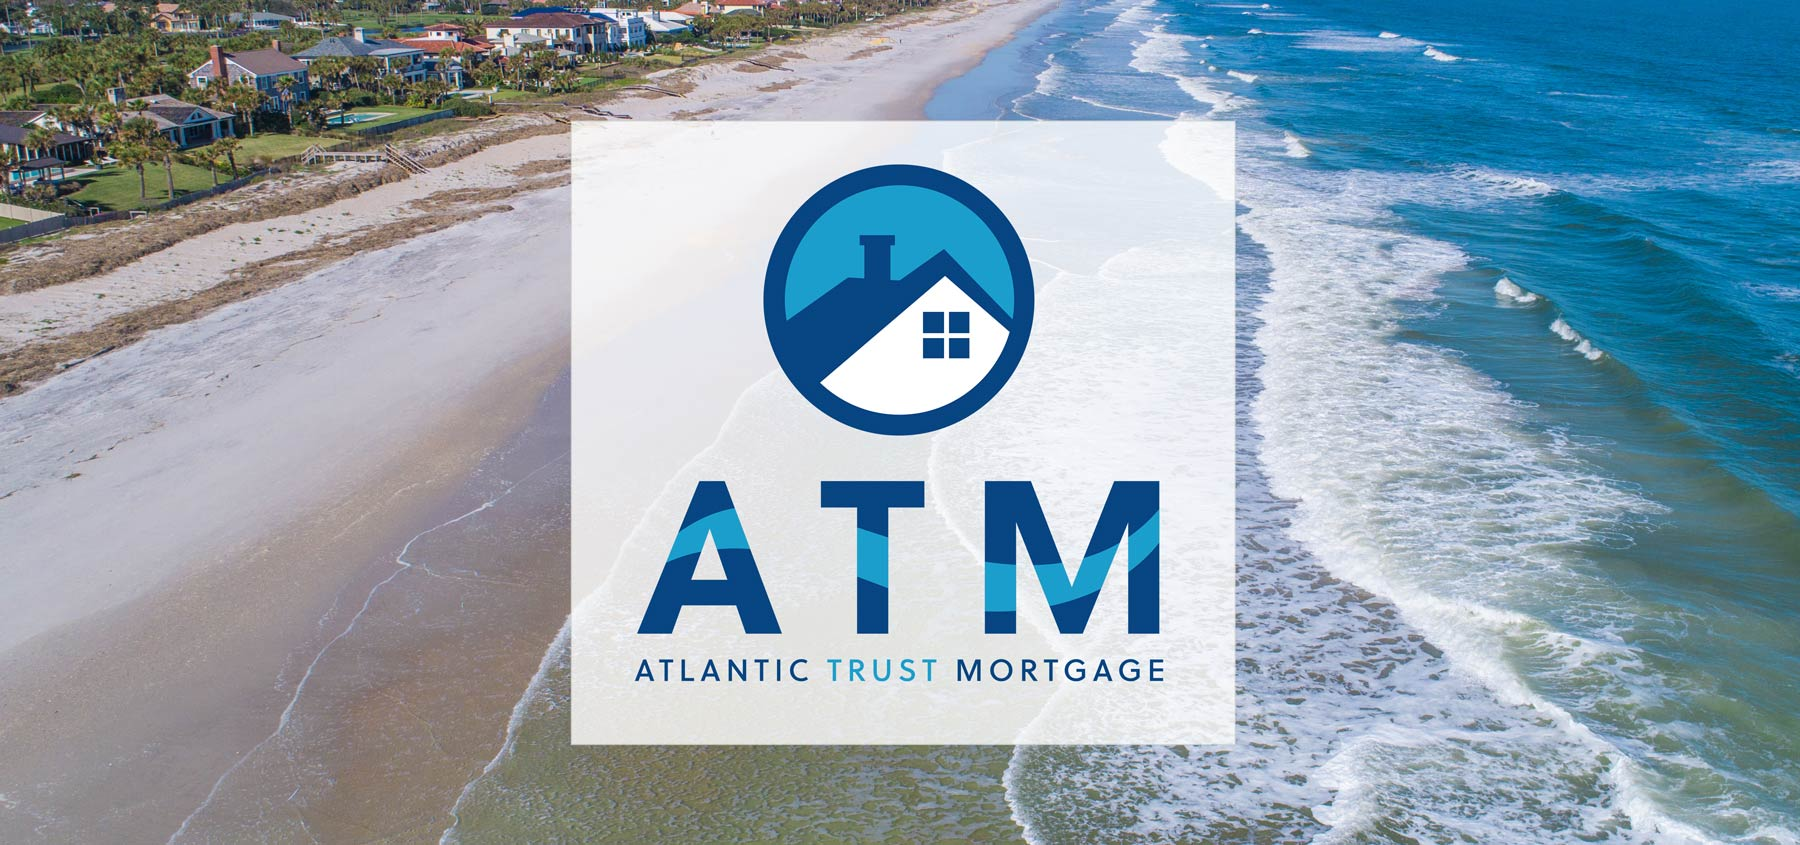 Atlantic Trust Mortgage logo over a photo background of the beach.